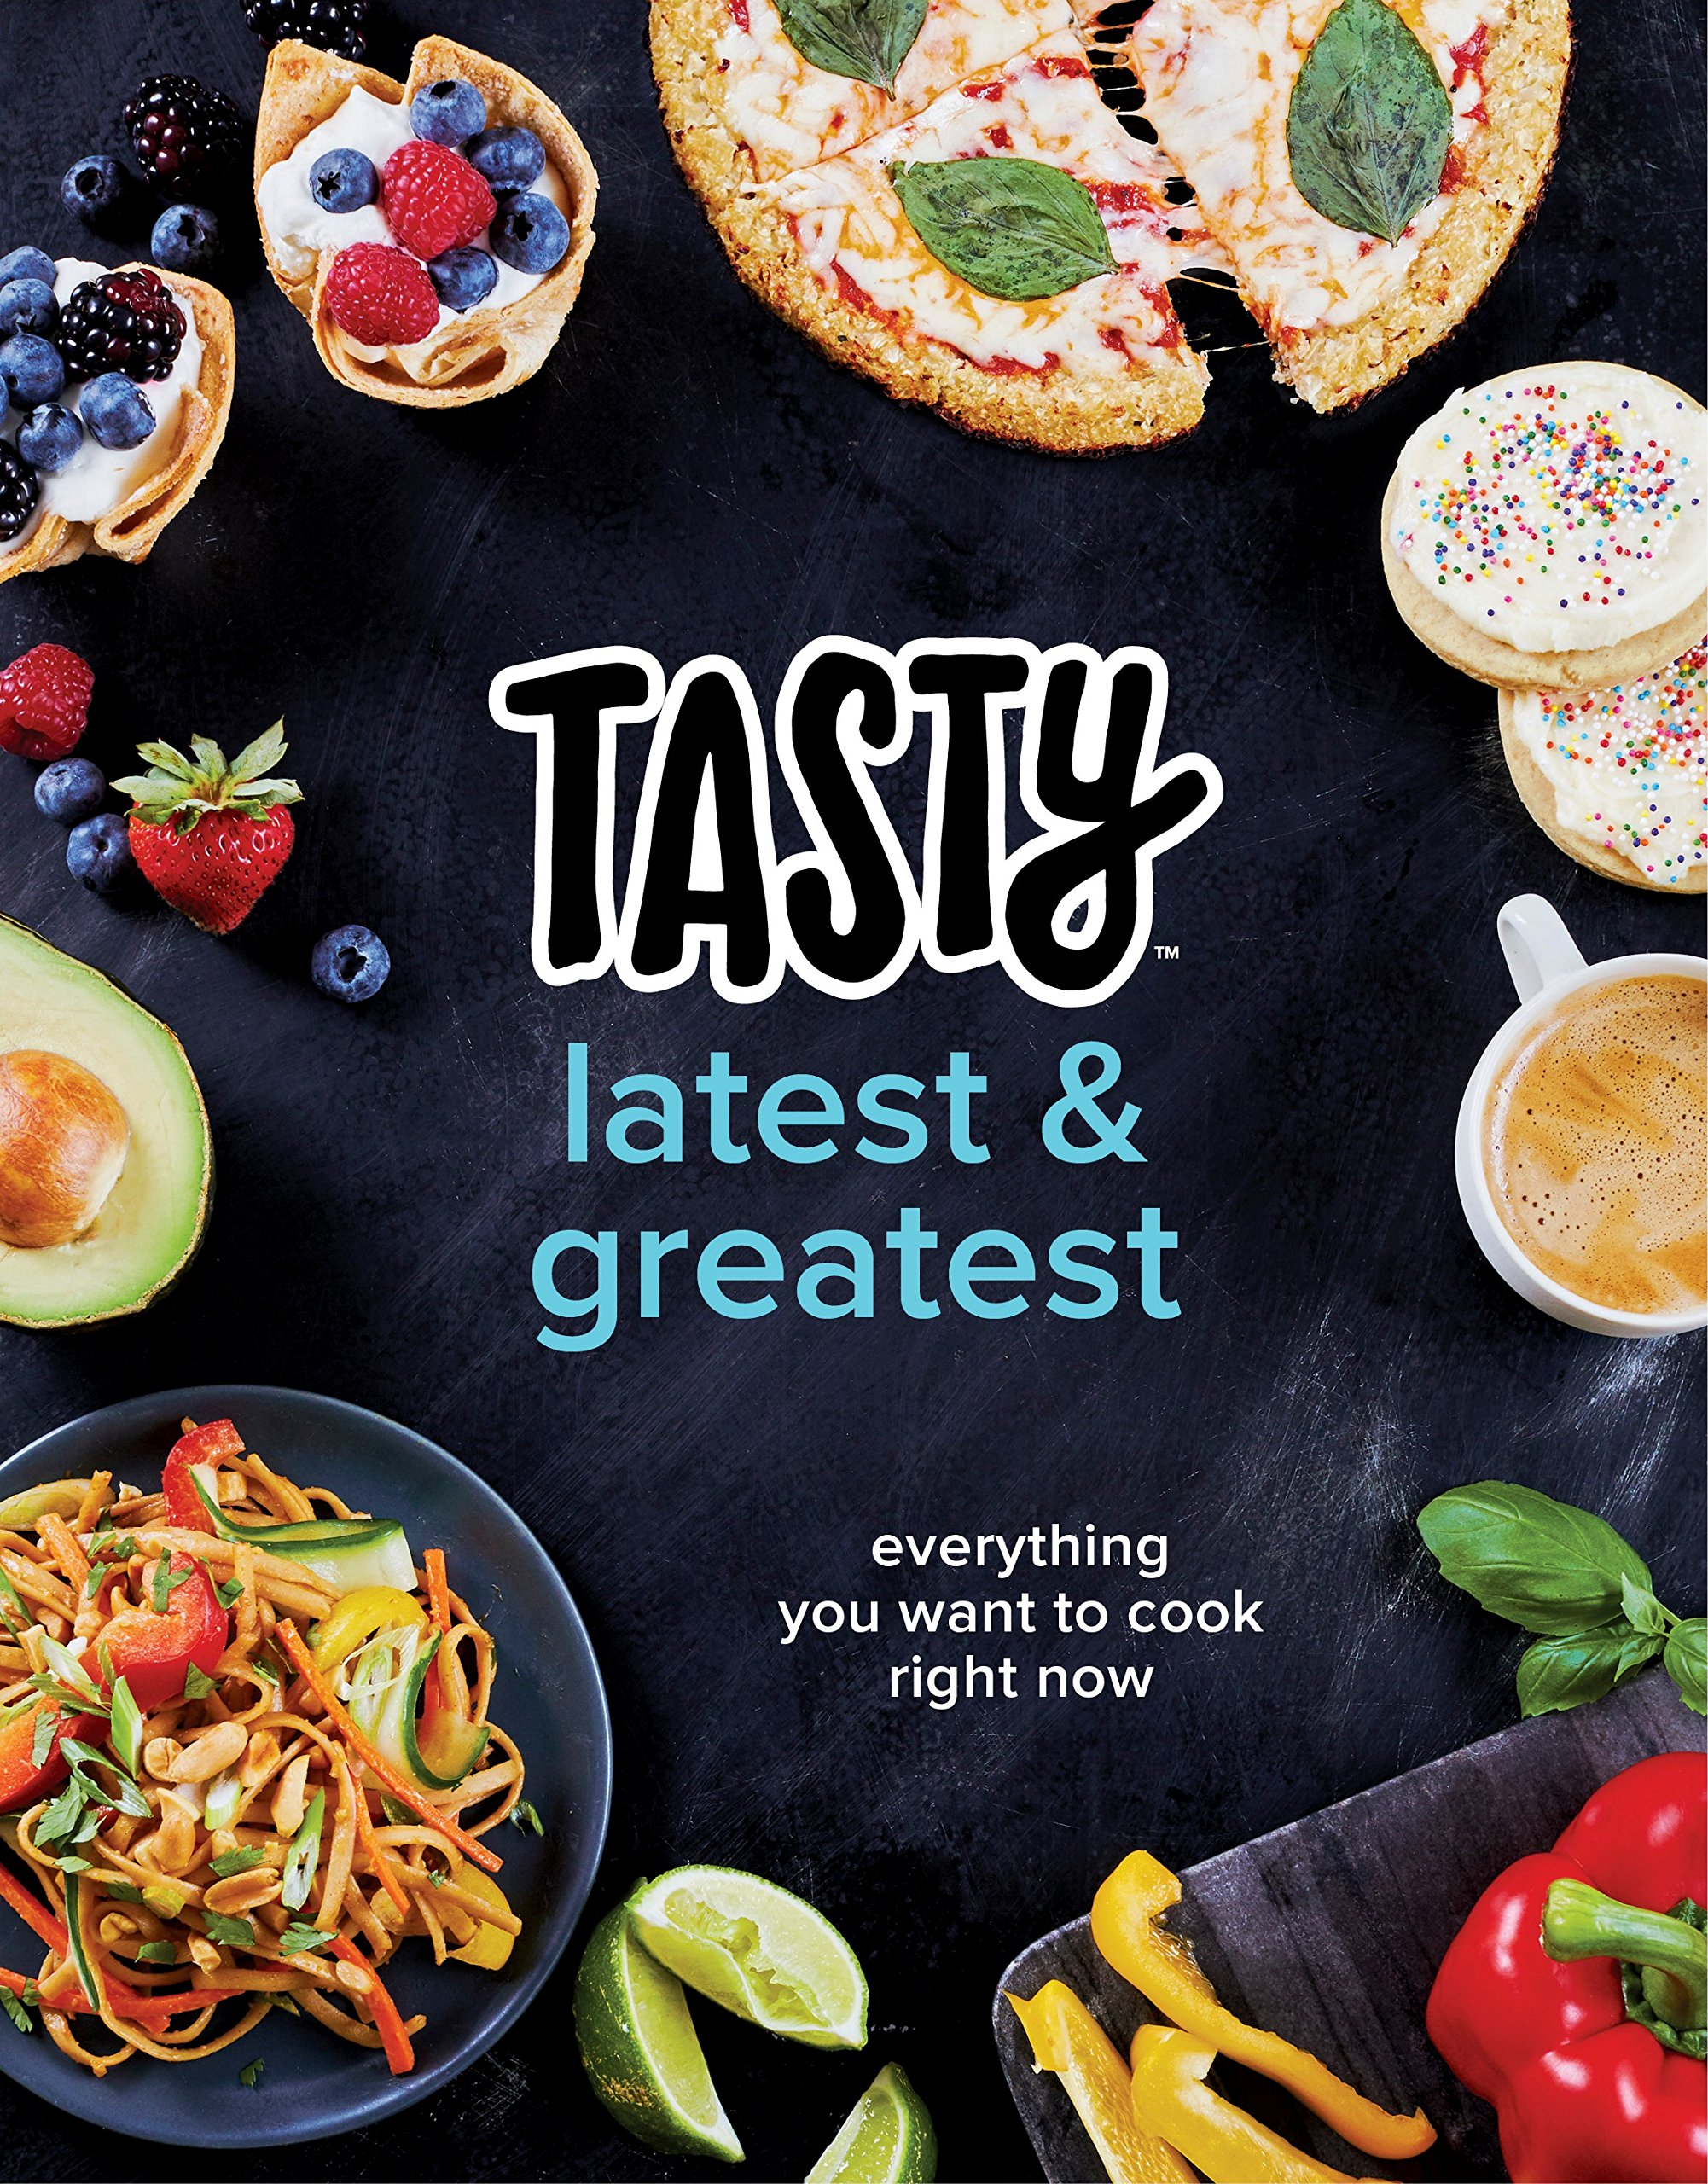 Buy Tasty Latest Greatest Now!